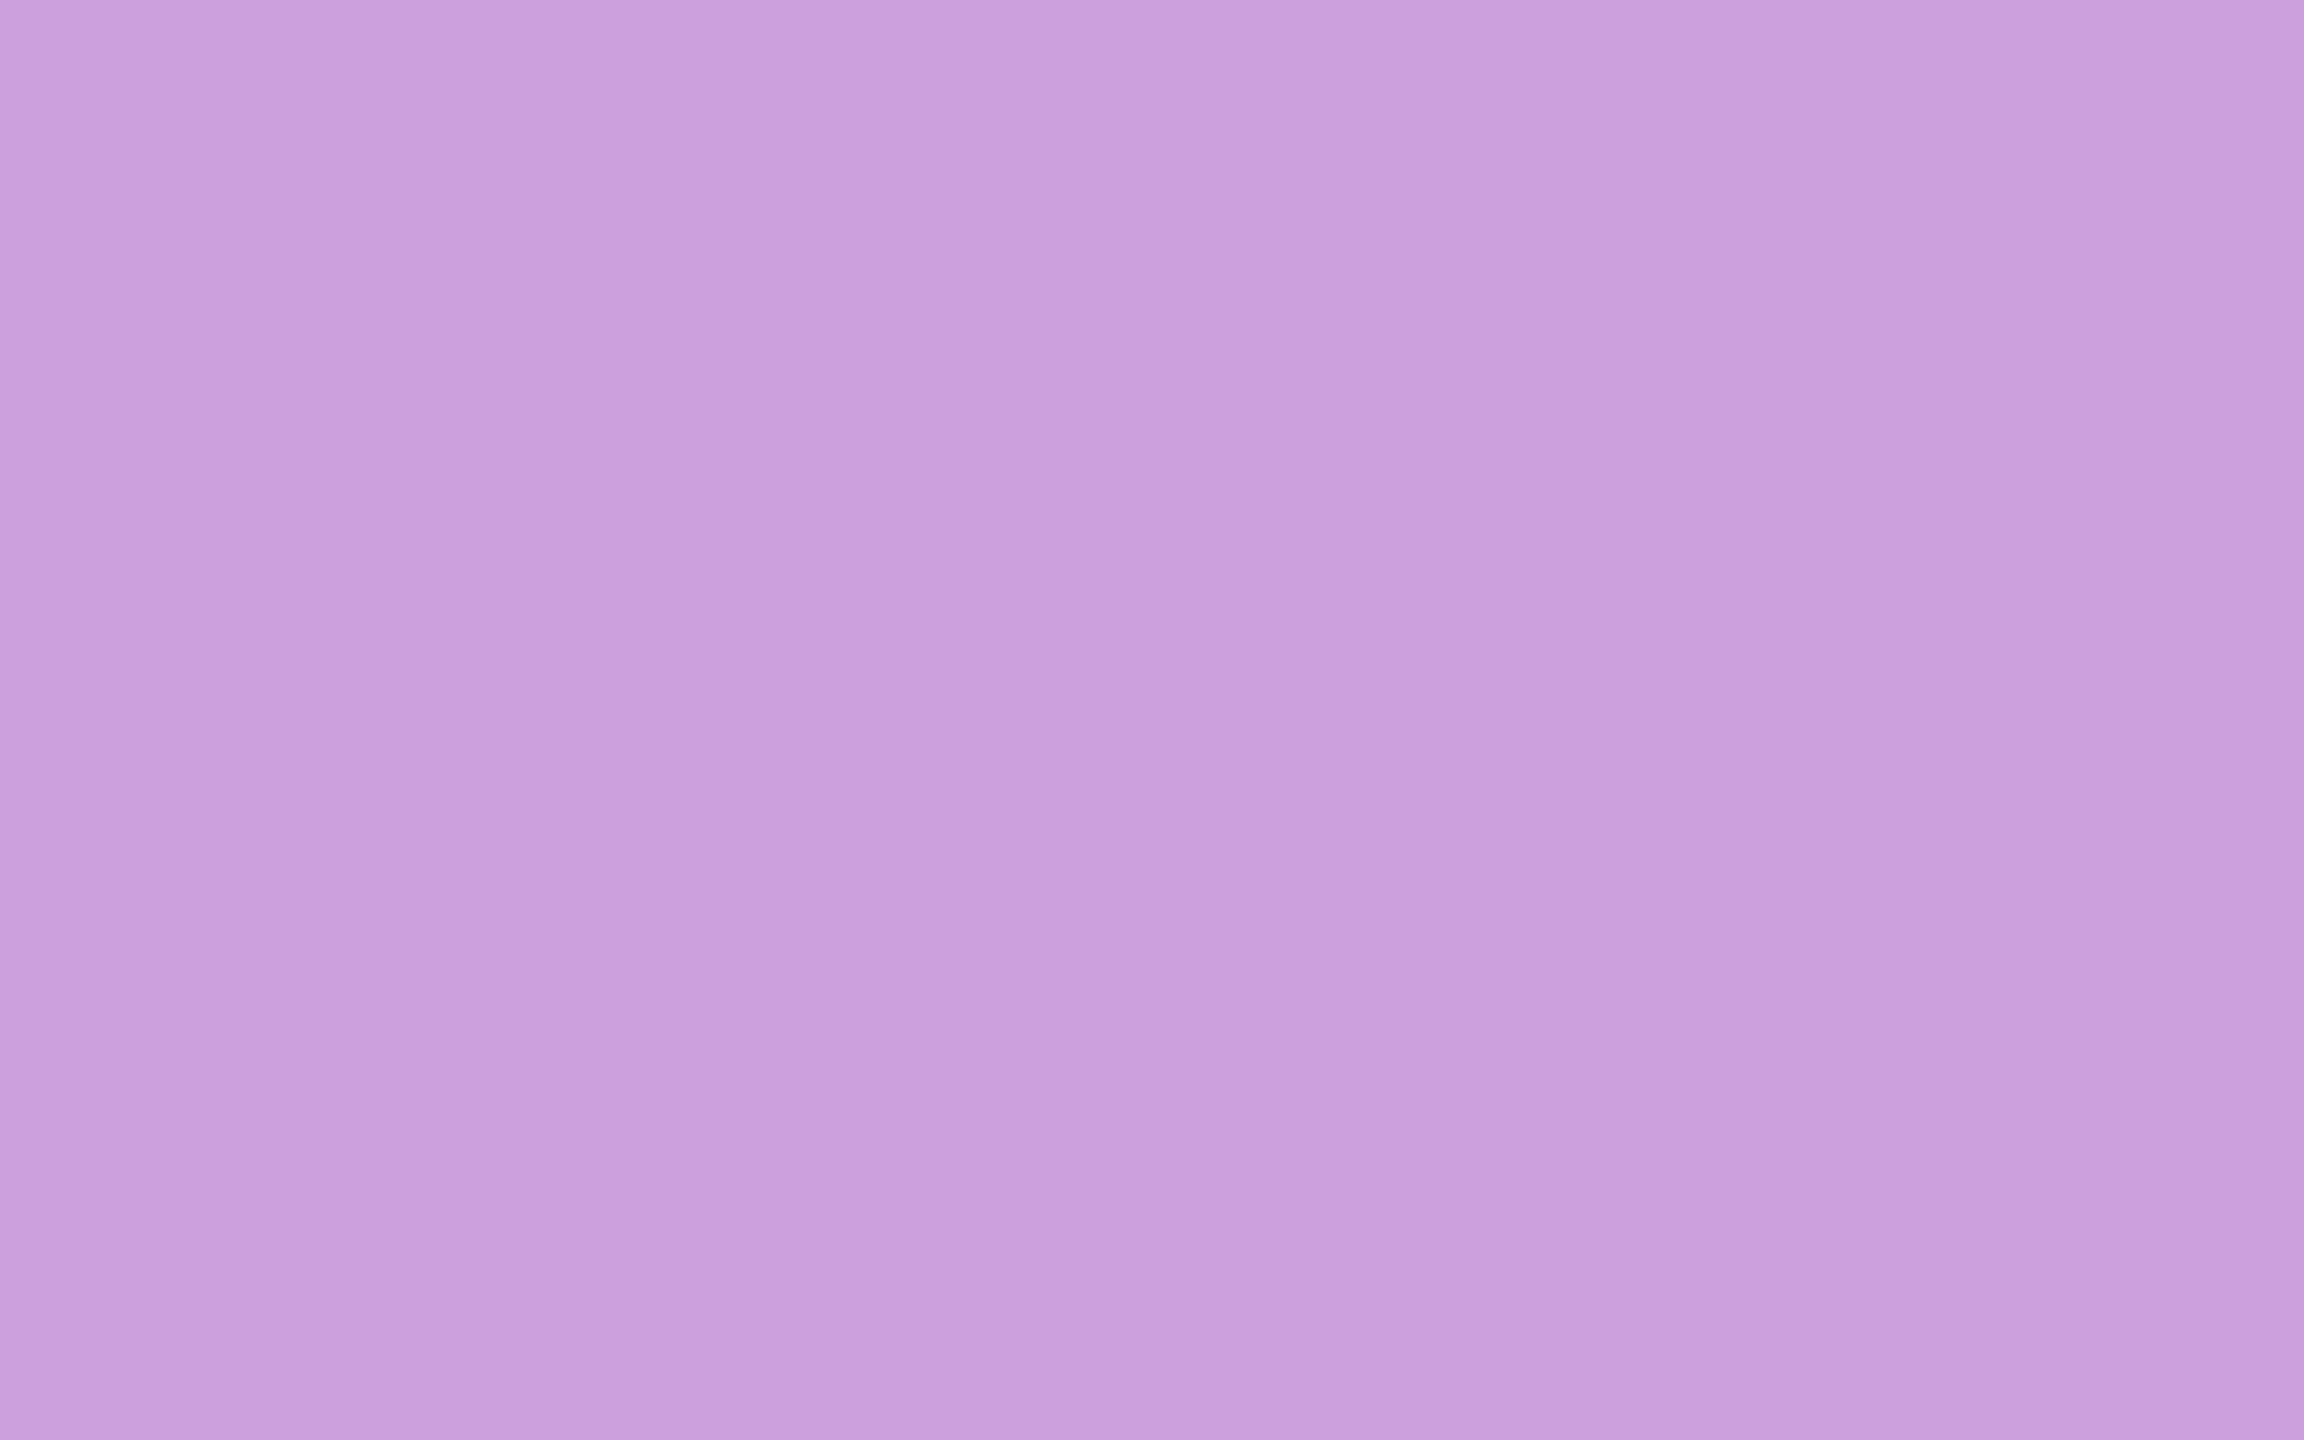 2304x1440 Wisteria Solid Color Background